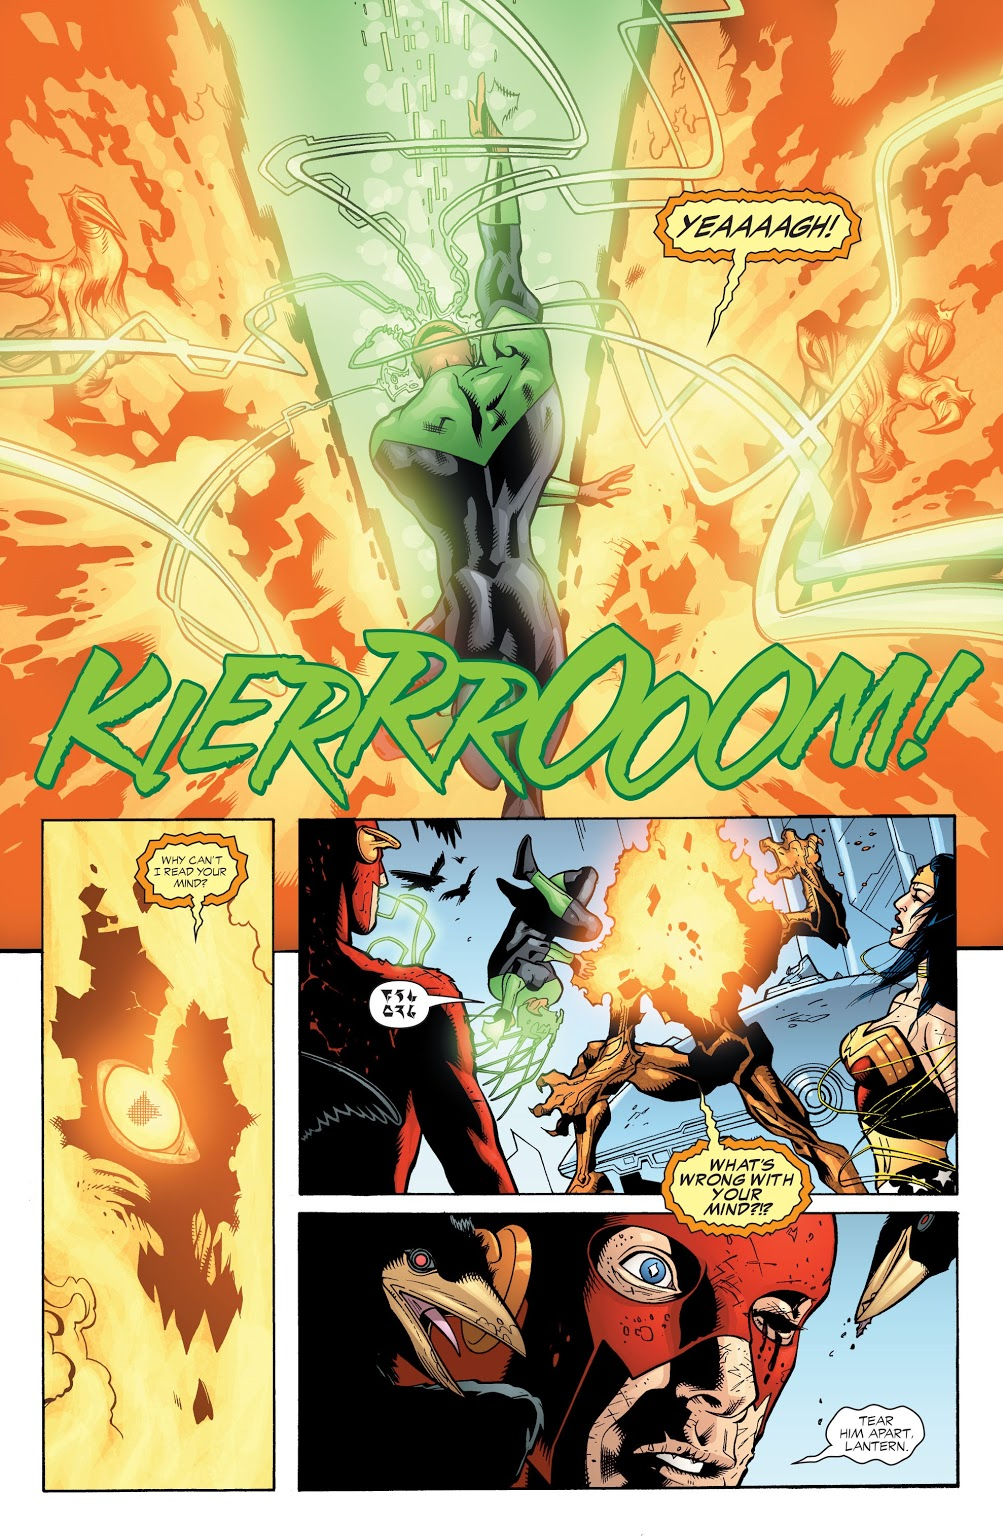 In 'JLA' (2003) #87, Green Lantern (John Stewart) performs an energy projection feat. John Stewart teleports from Ganthet and tears apart Fernus with a Green light energy attack.